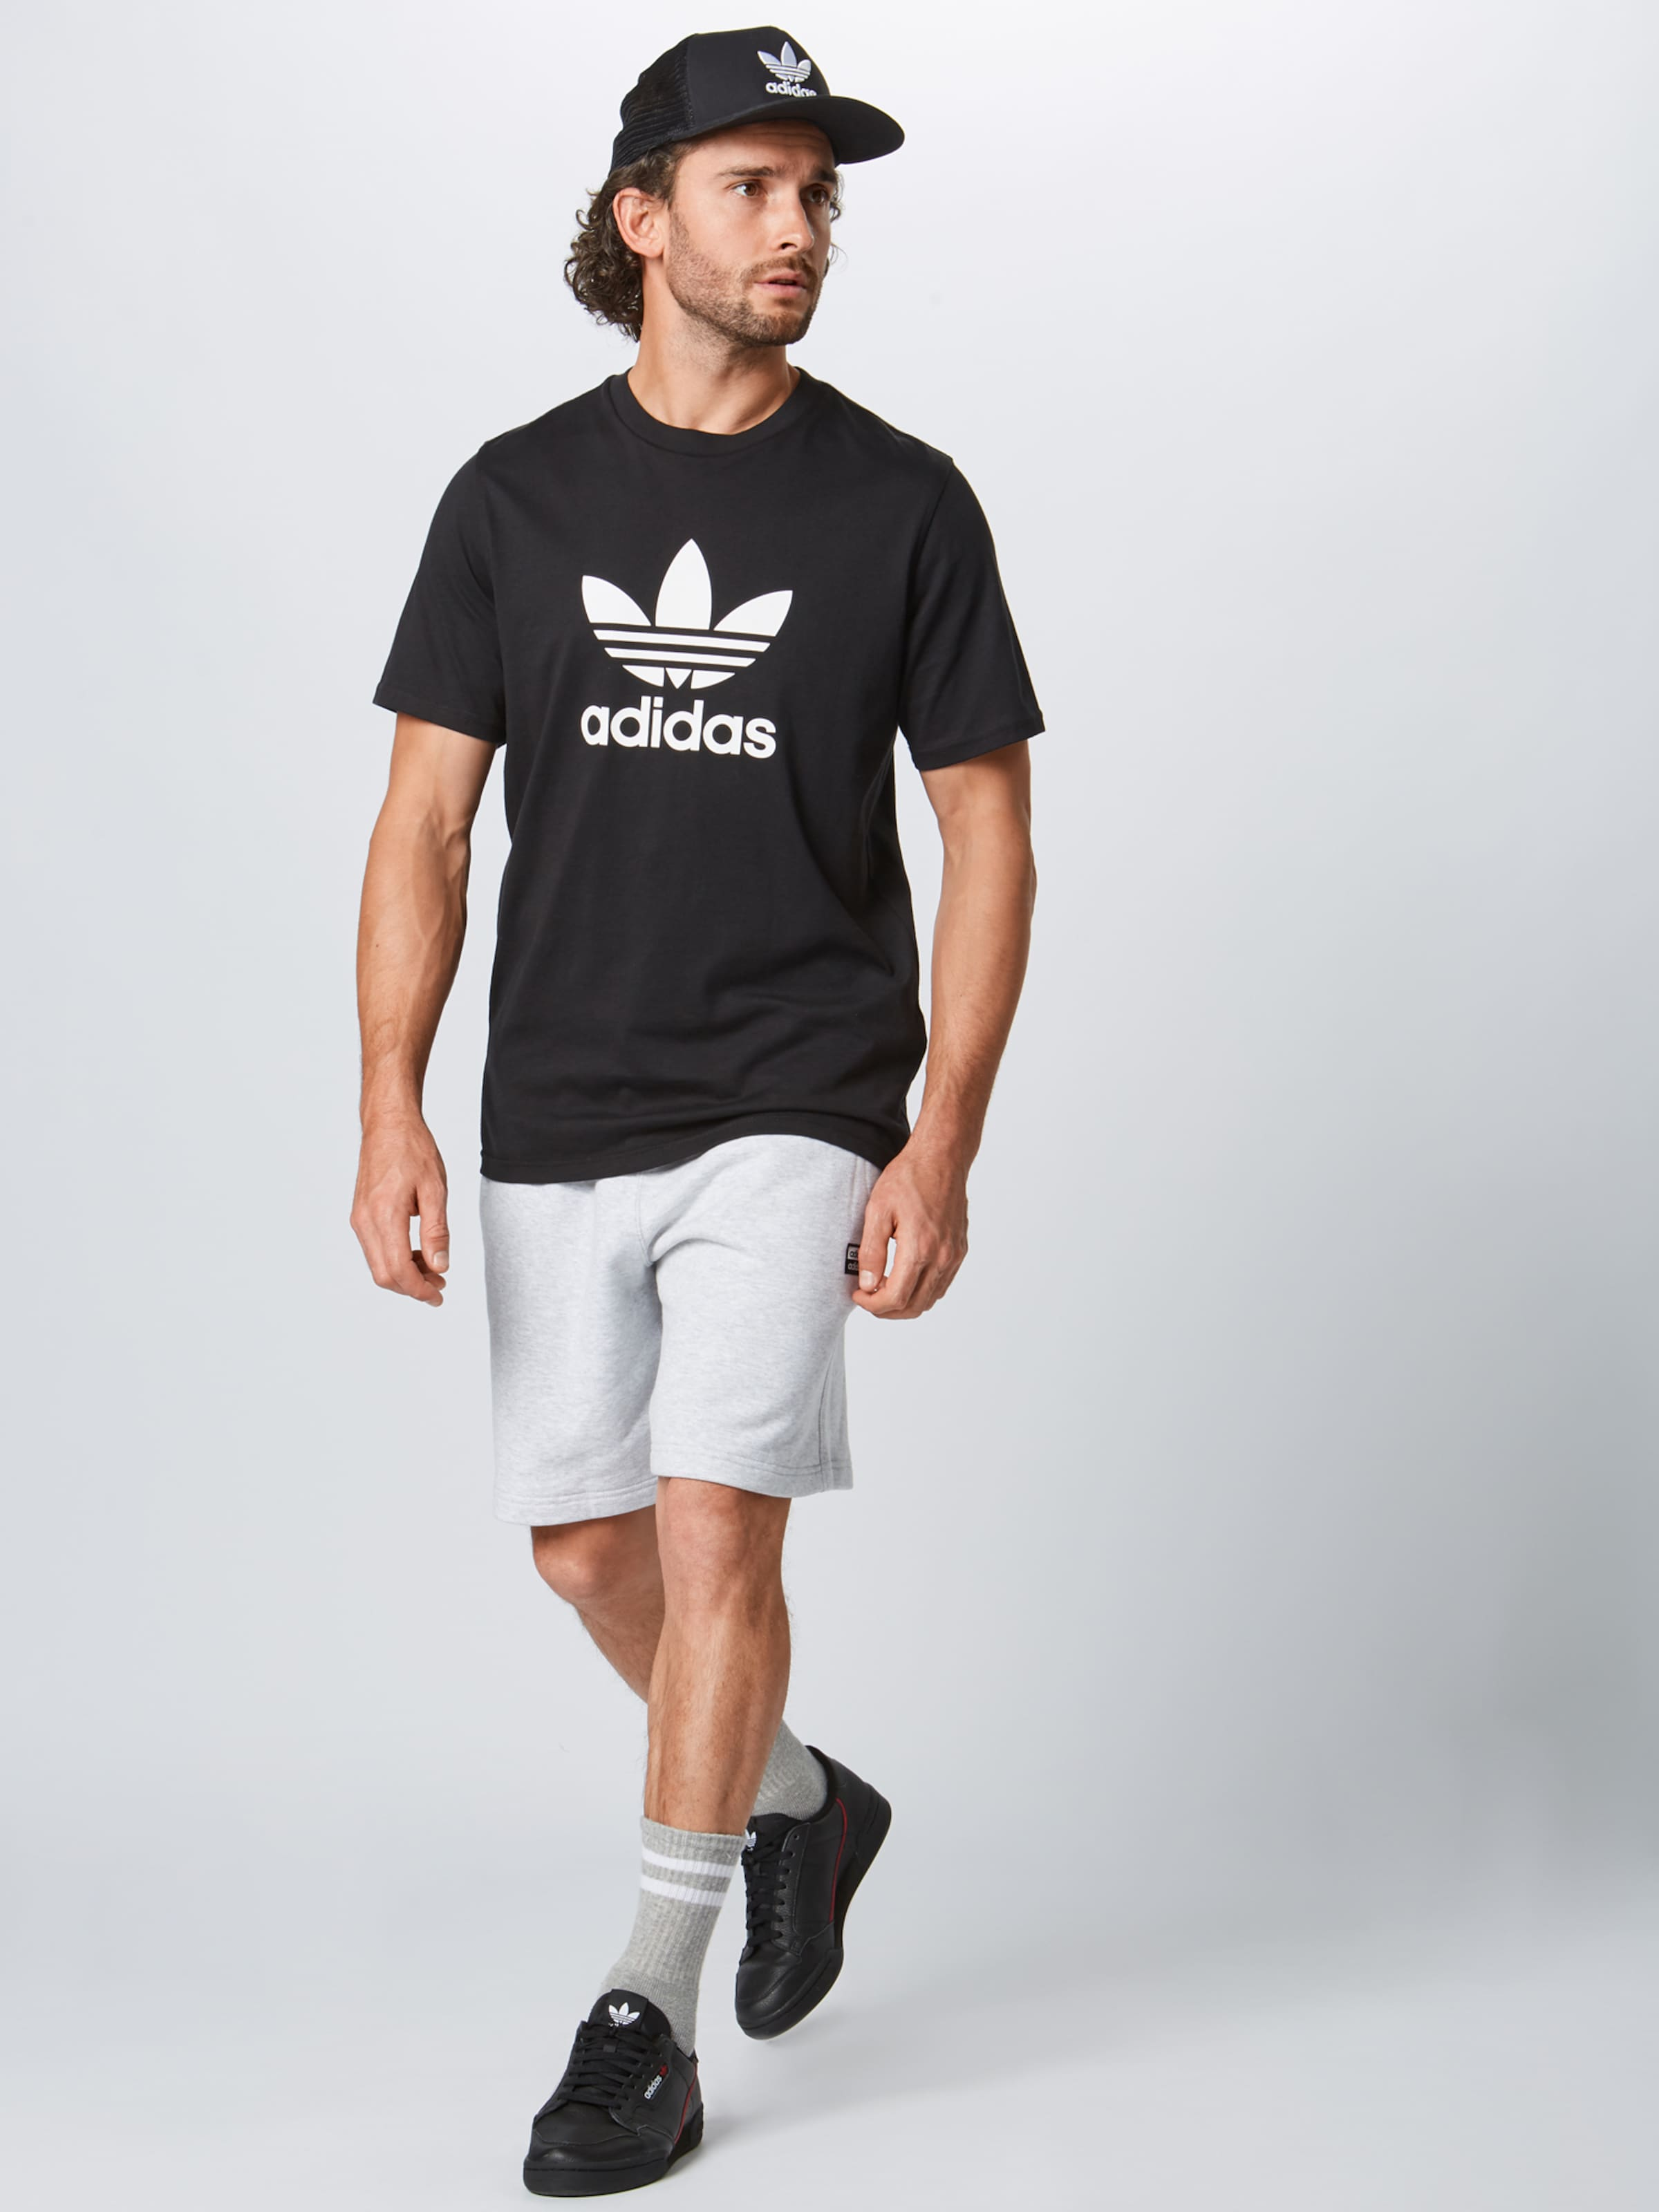 Noir Originals Adidas 'vocal Pantalon Short' En HIDYeWE29b